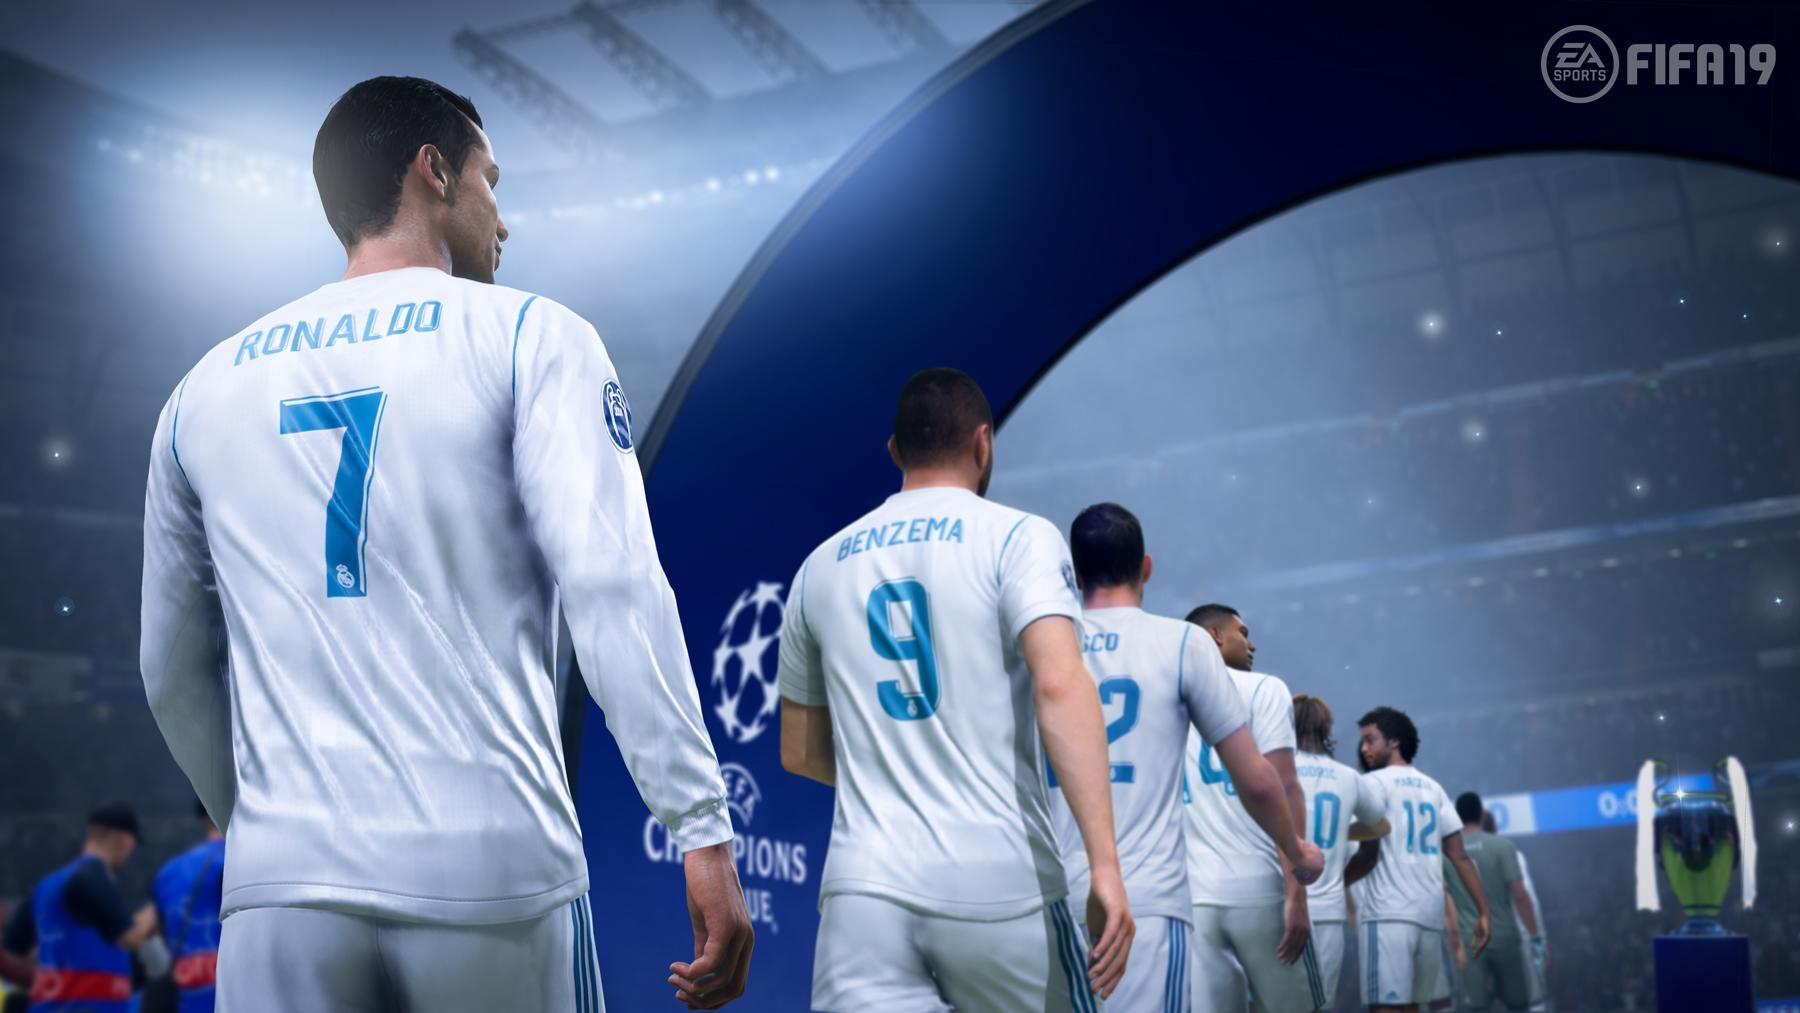 How Ronaldo's transfer impacted The Journey in 'FIFA 19'